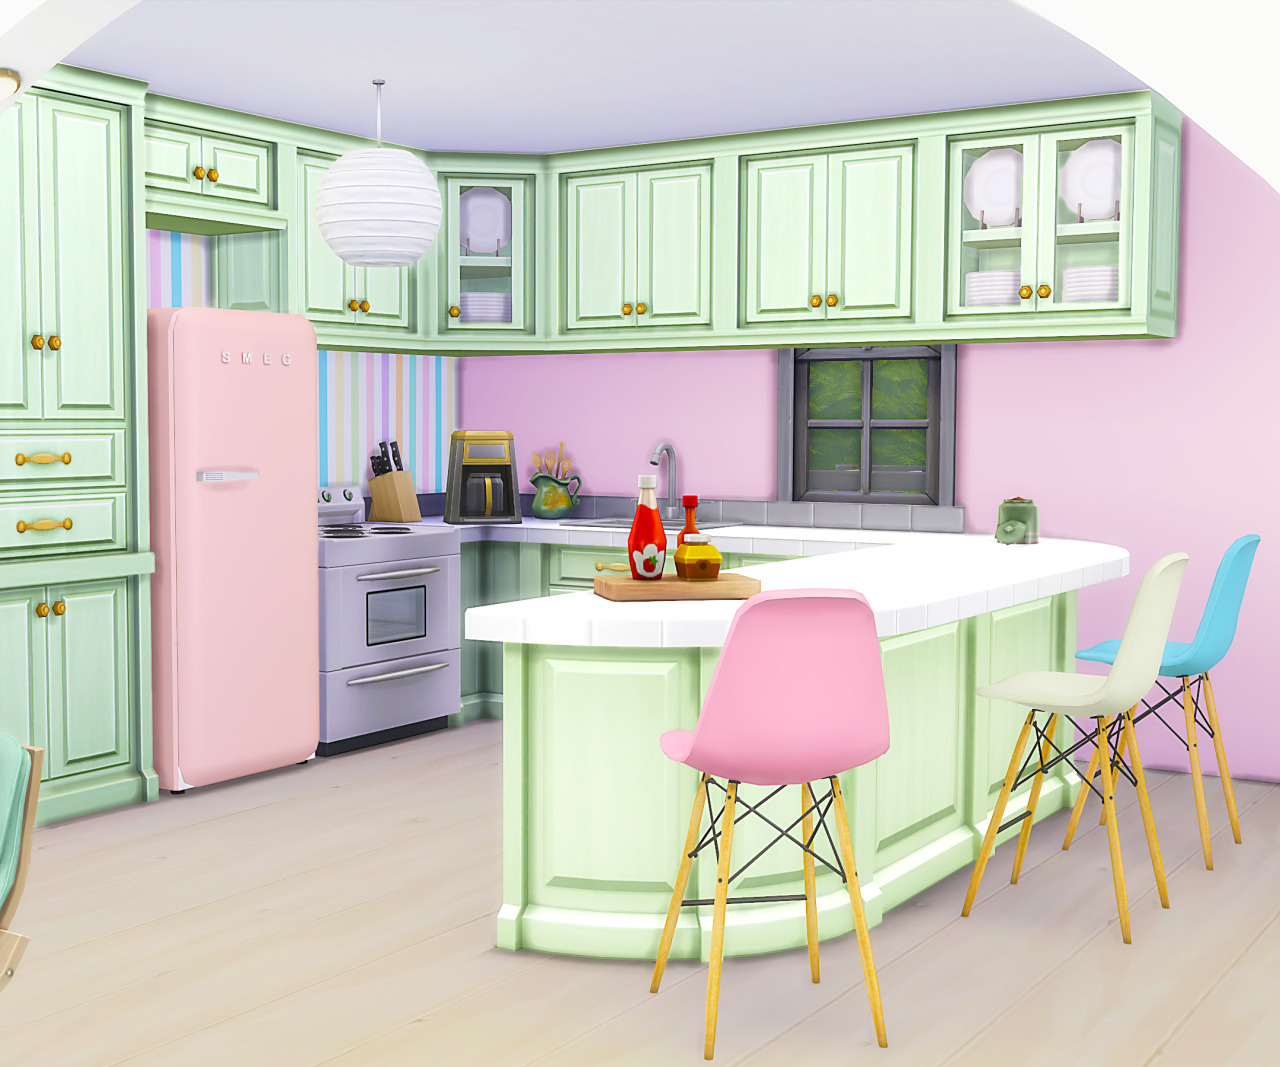 My Sims 4 Blog: Pink Spring House, Kitchen Recolors